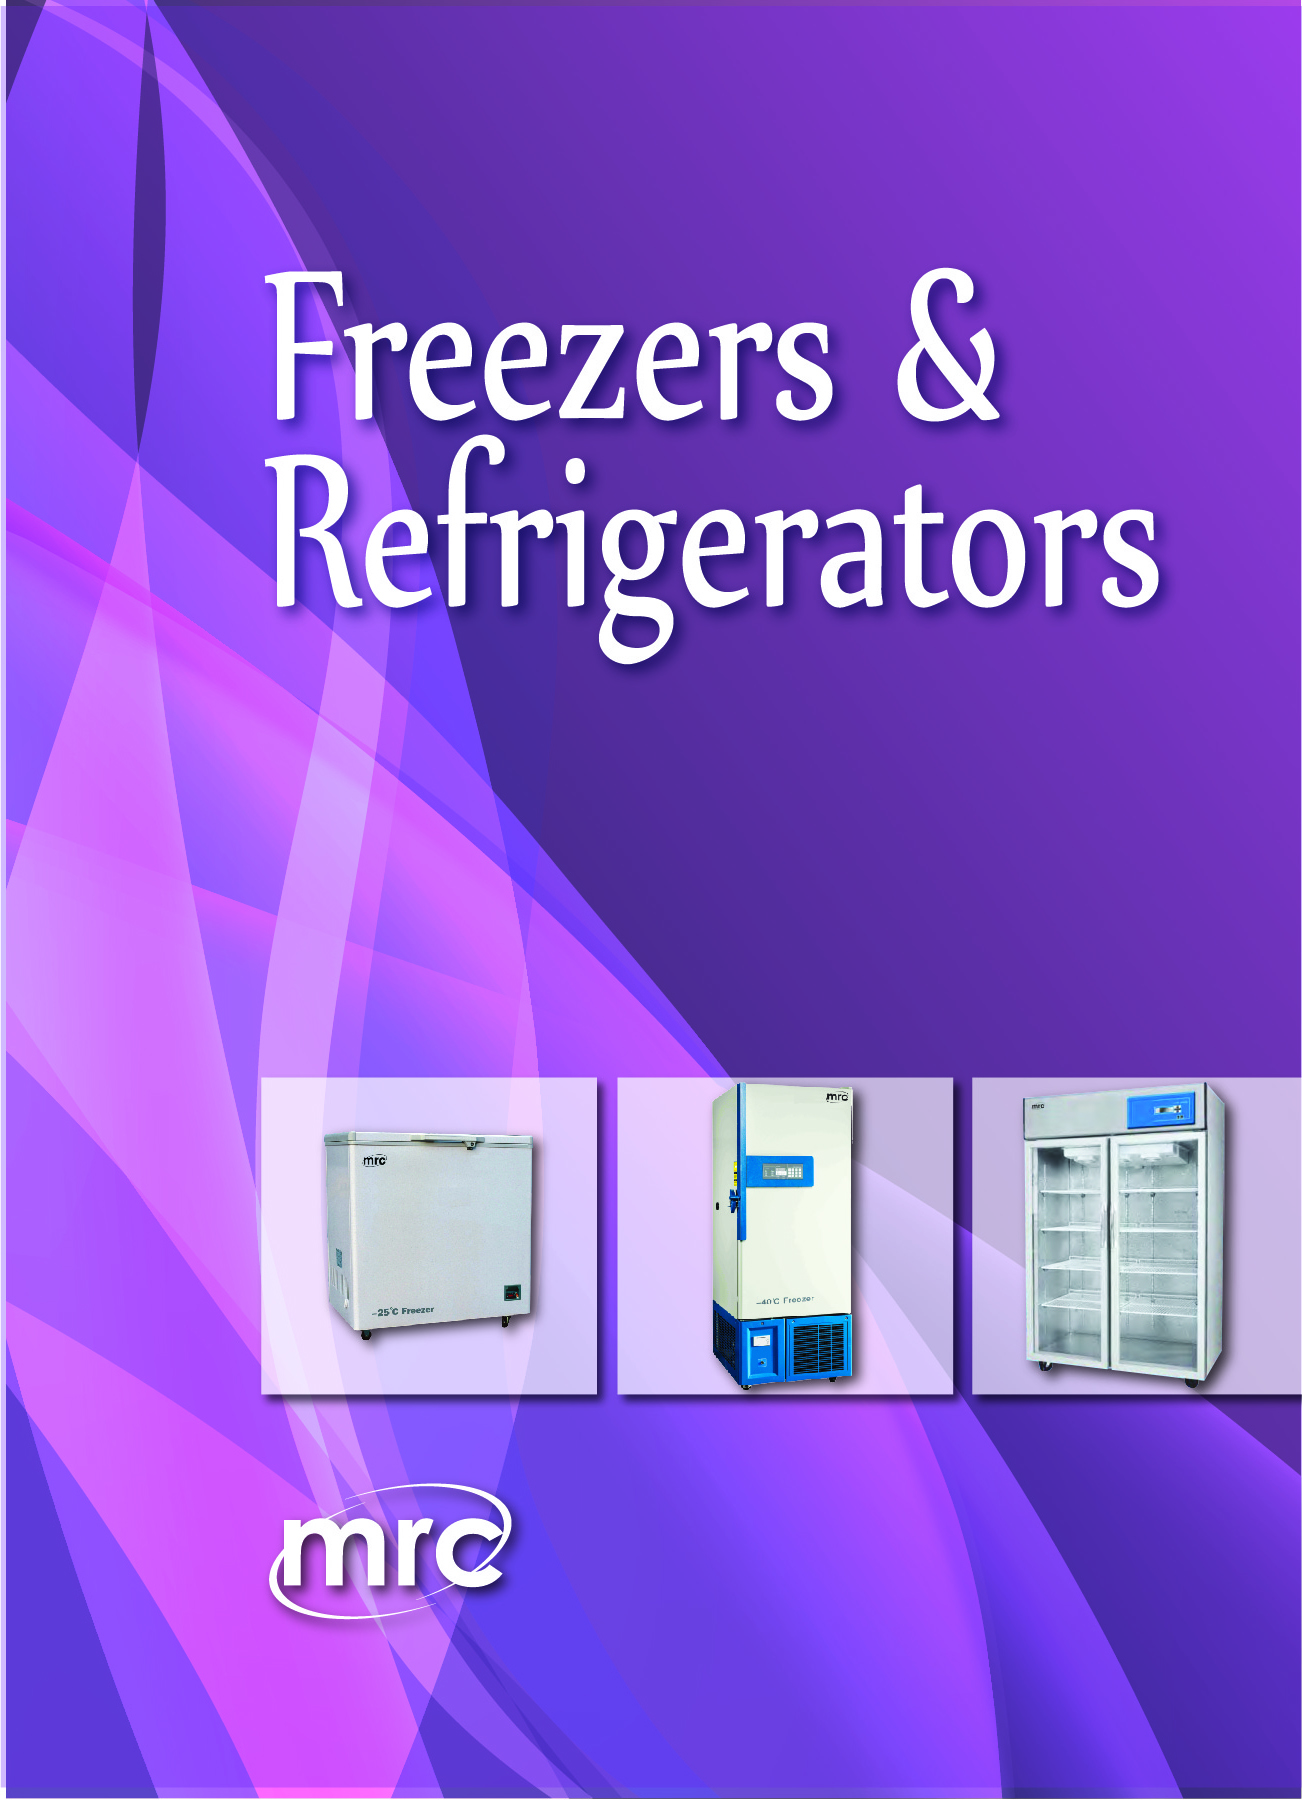 FREEZERS-REFRIGERATORS-COVER2017.jpg